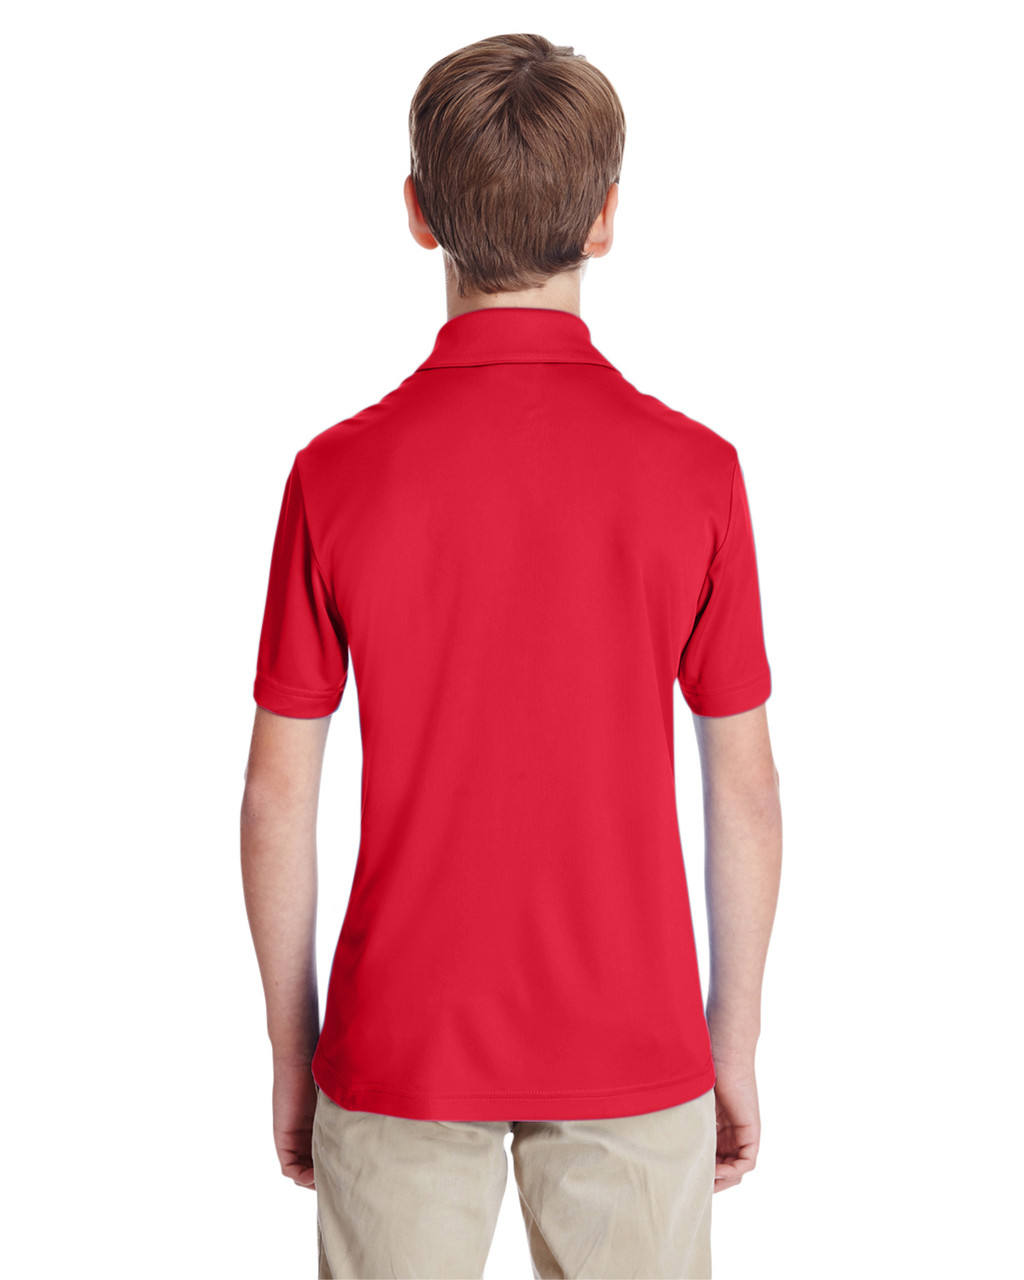 Sport Red - TT51Y Team 365 Youth Zone Performance Polo Shirt